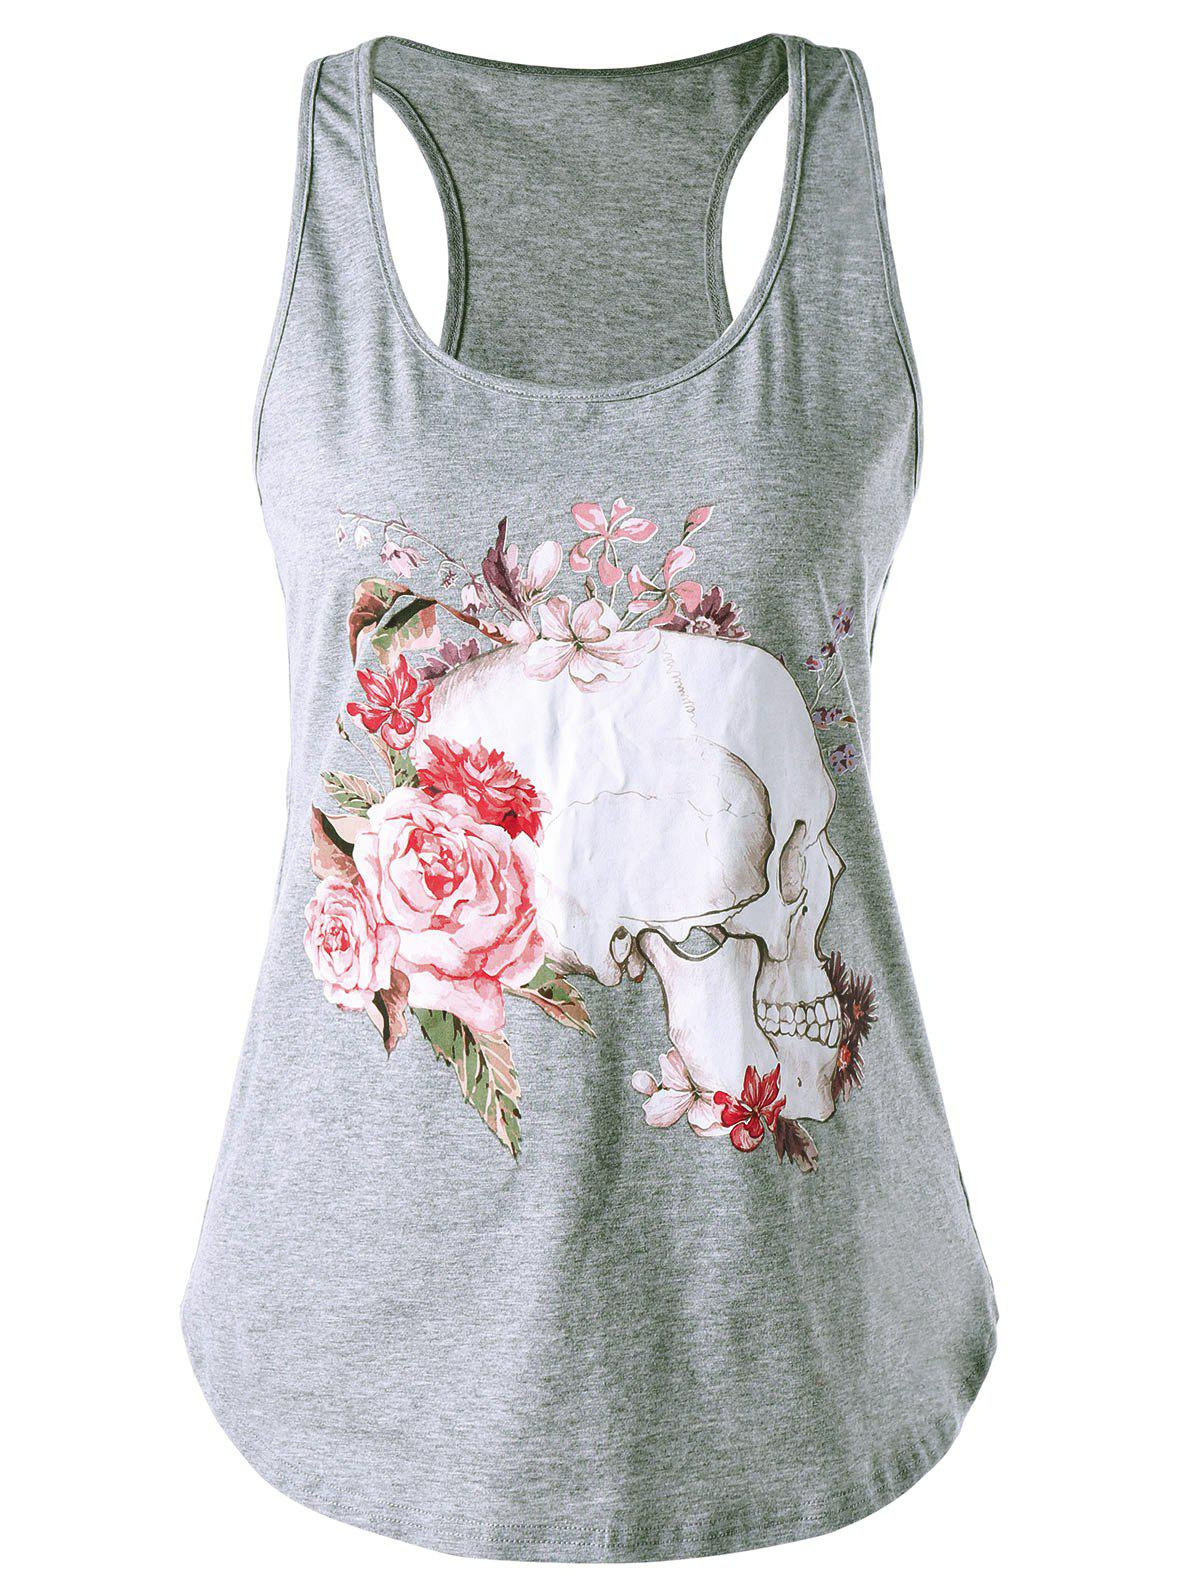 Skull Print Racerback Tank TopWOMEN<br><br>Size: XL; Color: GRAY; Material: Rayon,Spandex; Shirt Length: Regular; Pattern Type: Floral,Skulls; Style: Casual; Weight: 0.1800kg; Package Contents: 1 x Tank Top;